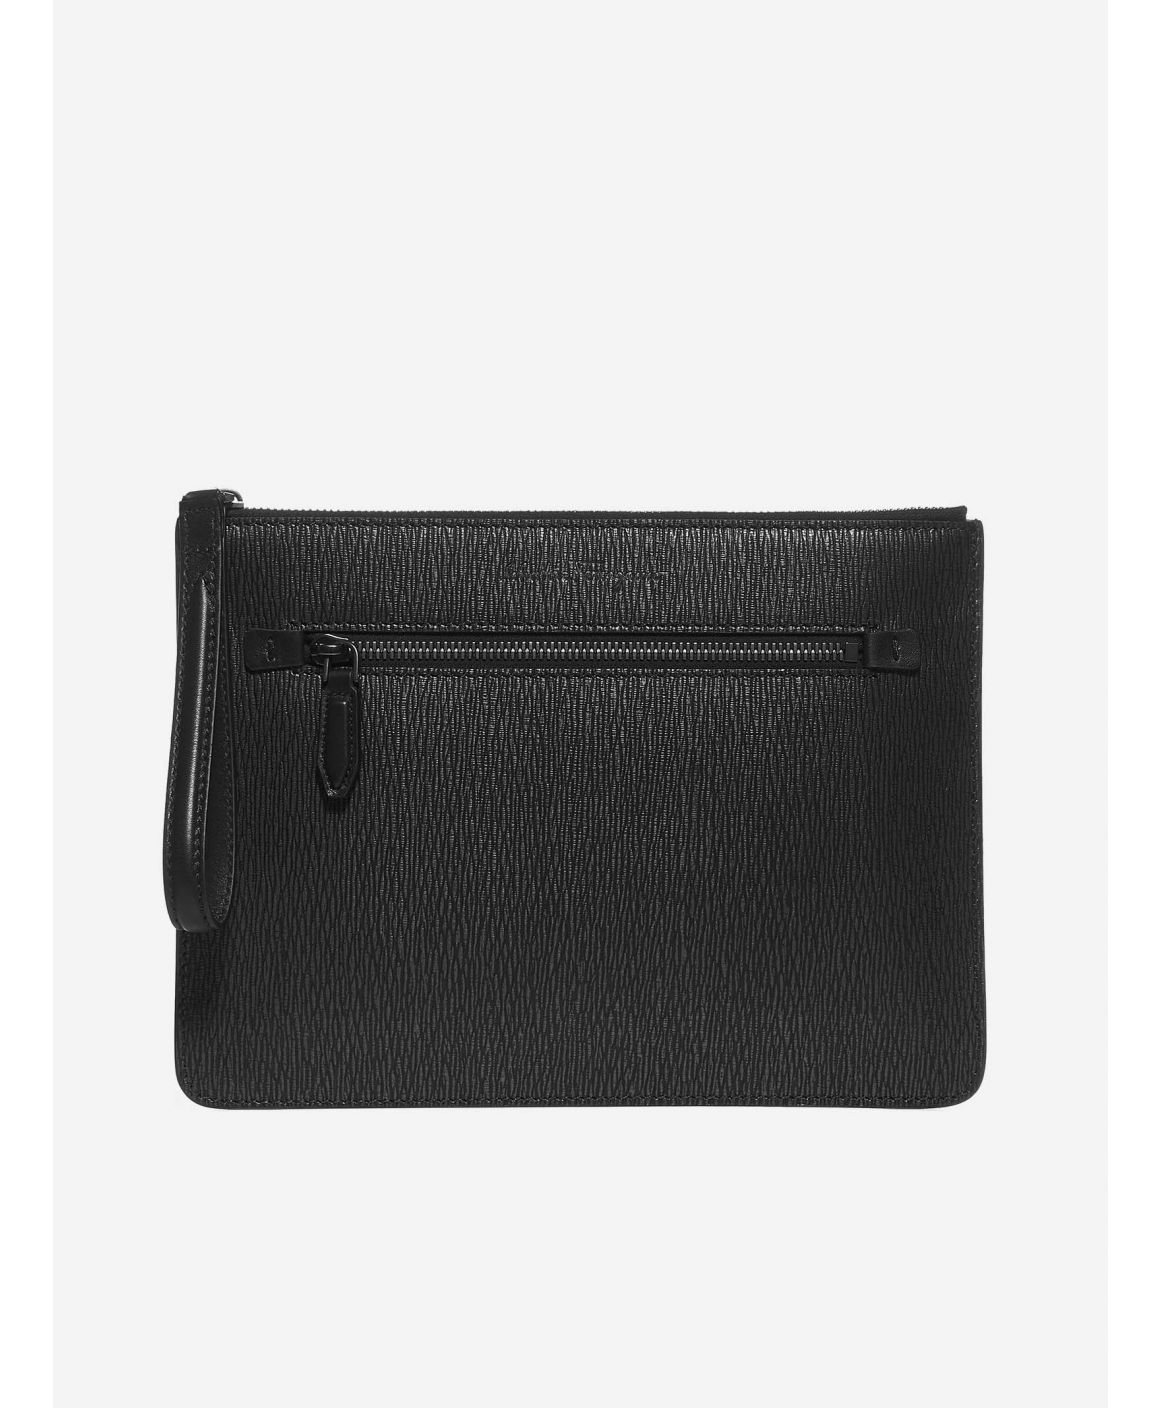 Revival 3.0 leather pouch